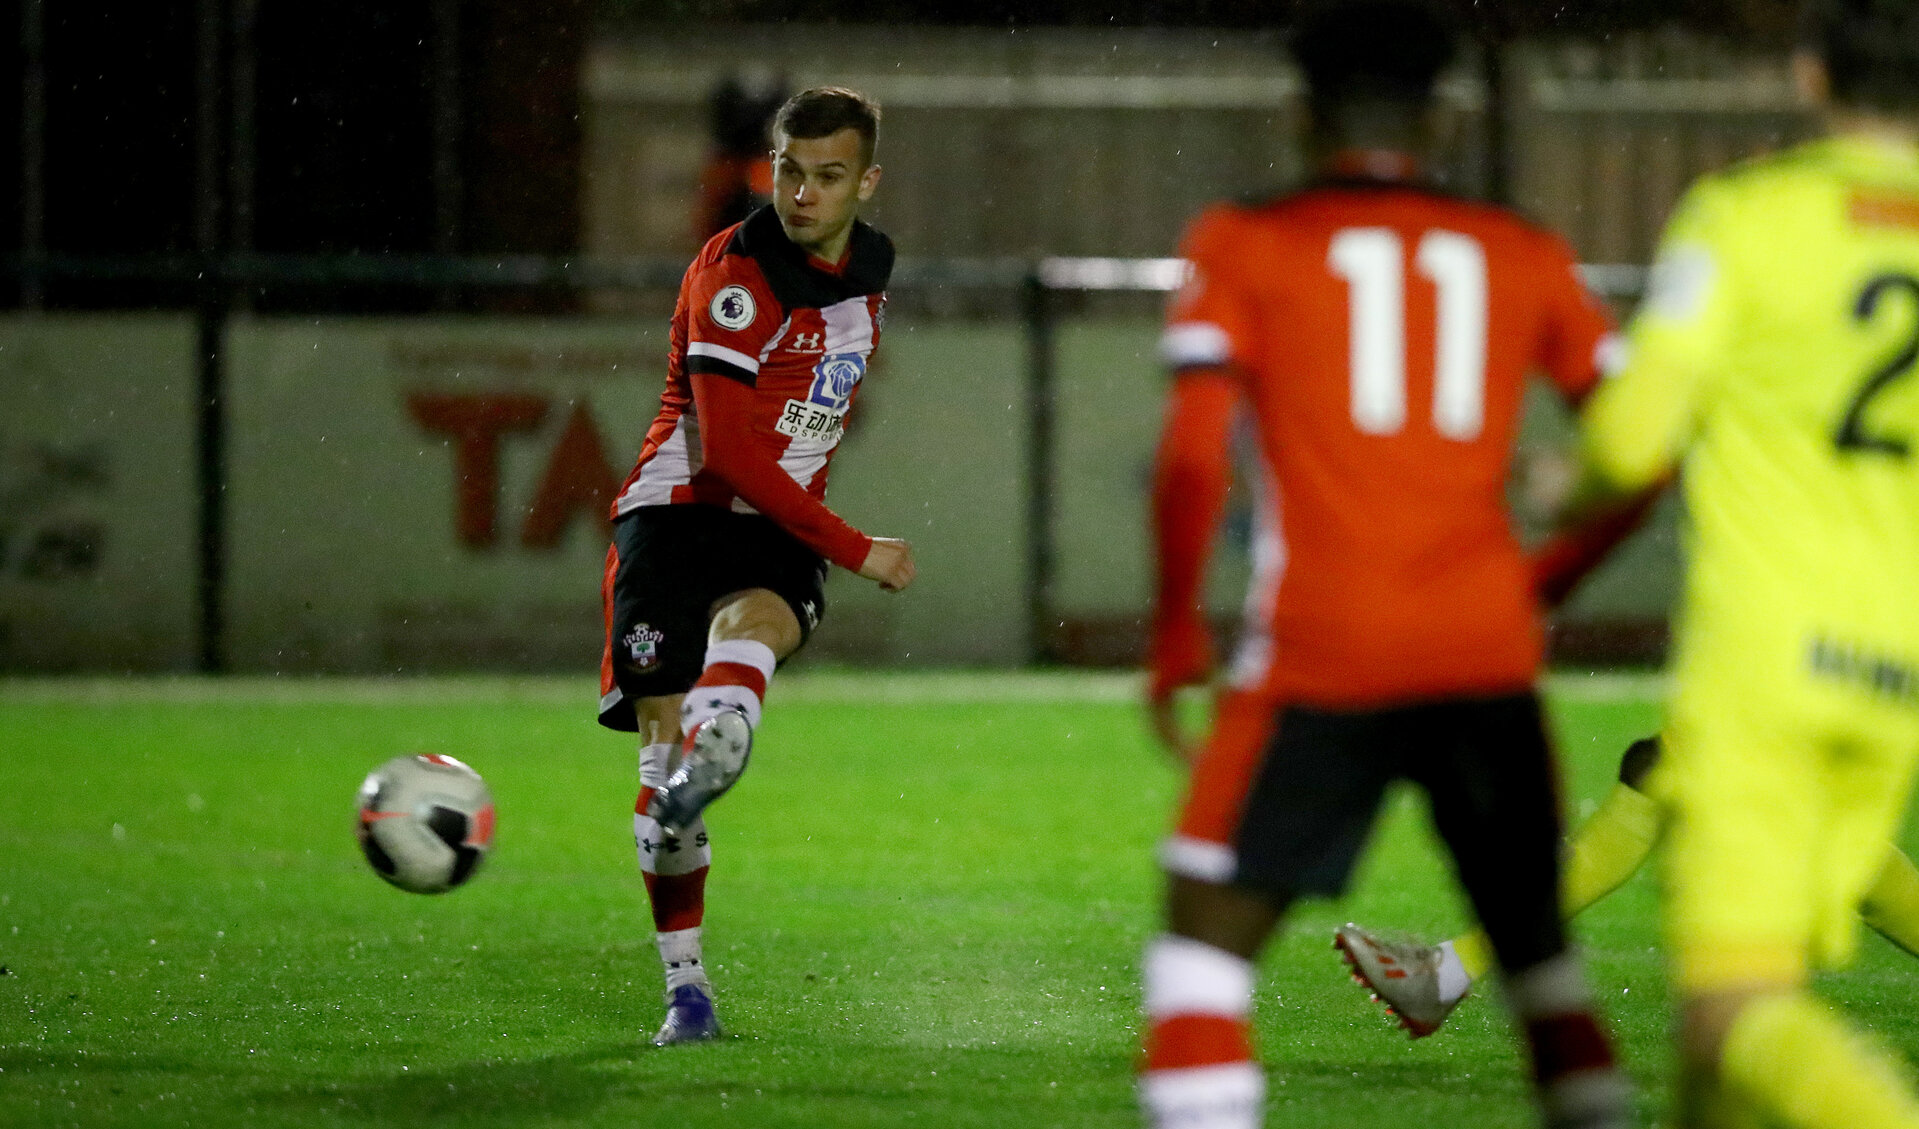 SOUTHAMPTON, ENGLAND - FEBRUARY 18: Kornelius Hansen opens the scoring during the Hampshire Senior Cup match between Southampton FC and Havant and Waterlooville at the Snows Stadium, Totton, on February 18, 2020 in Southampton, England. (Photo by Matt Watson/Southampton FC via Getty Images)